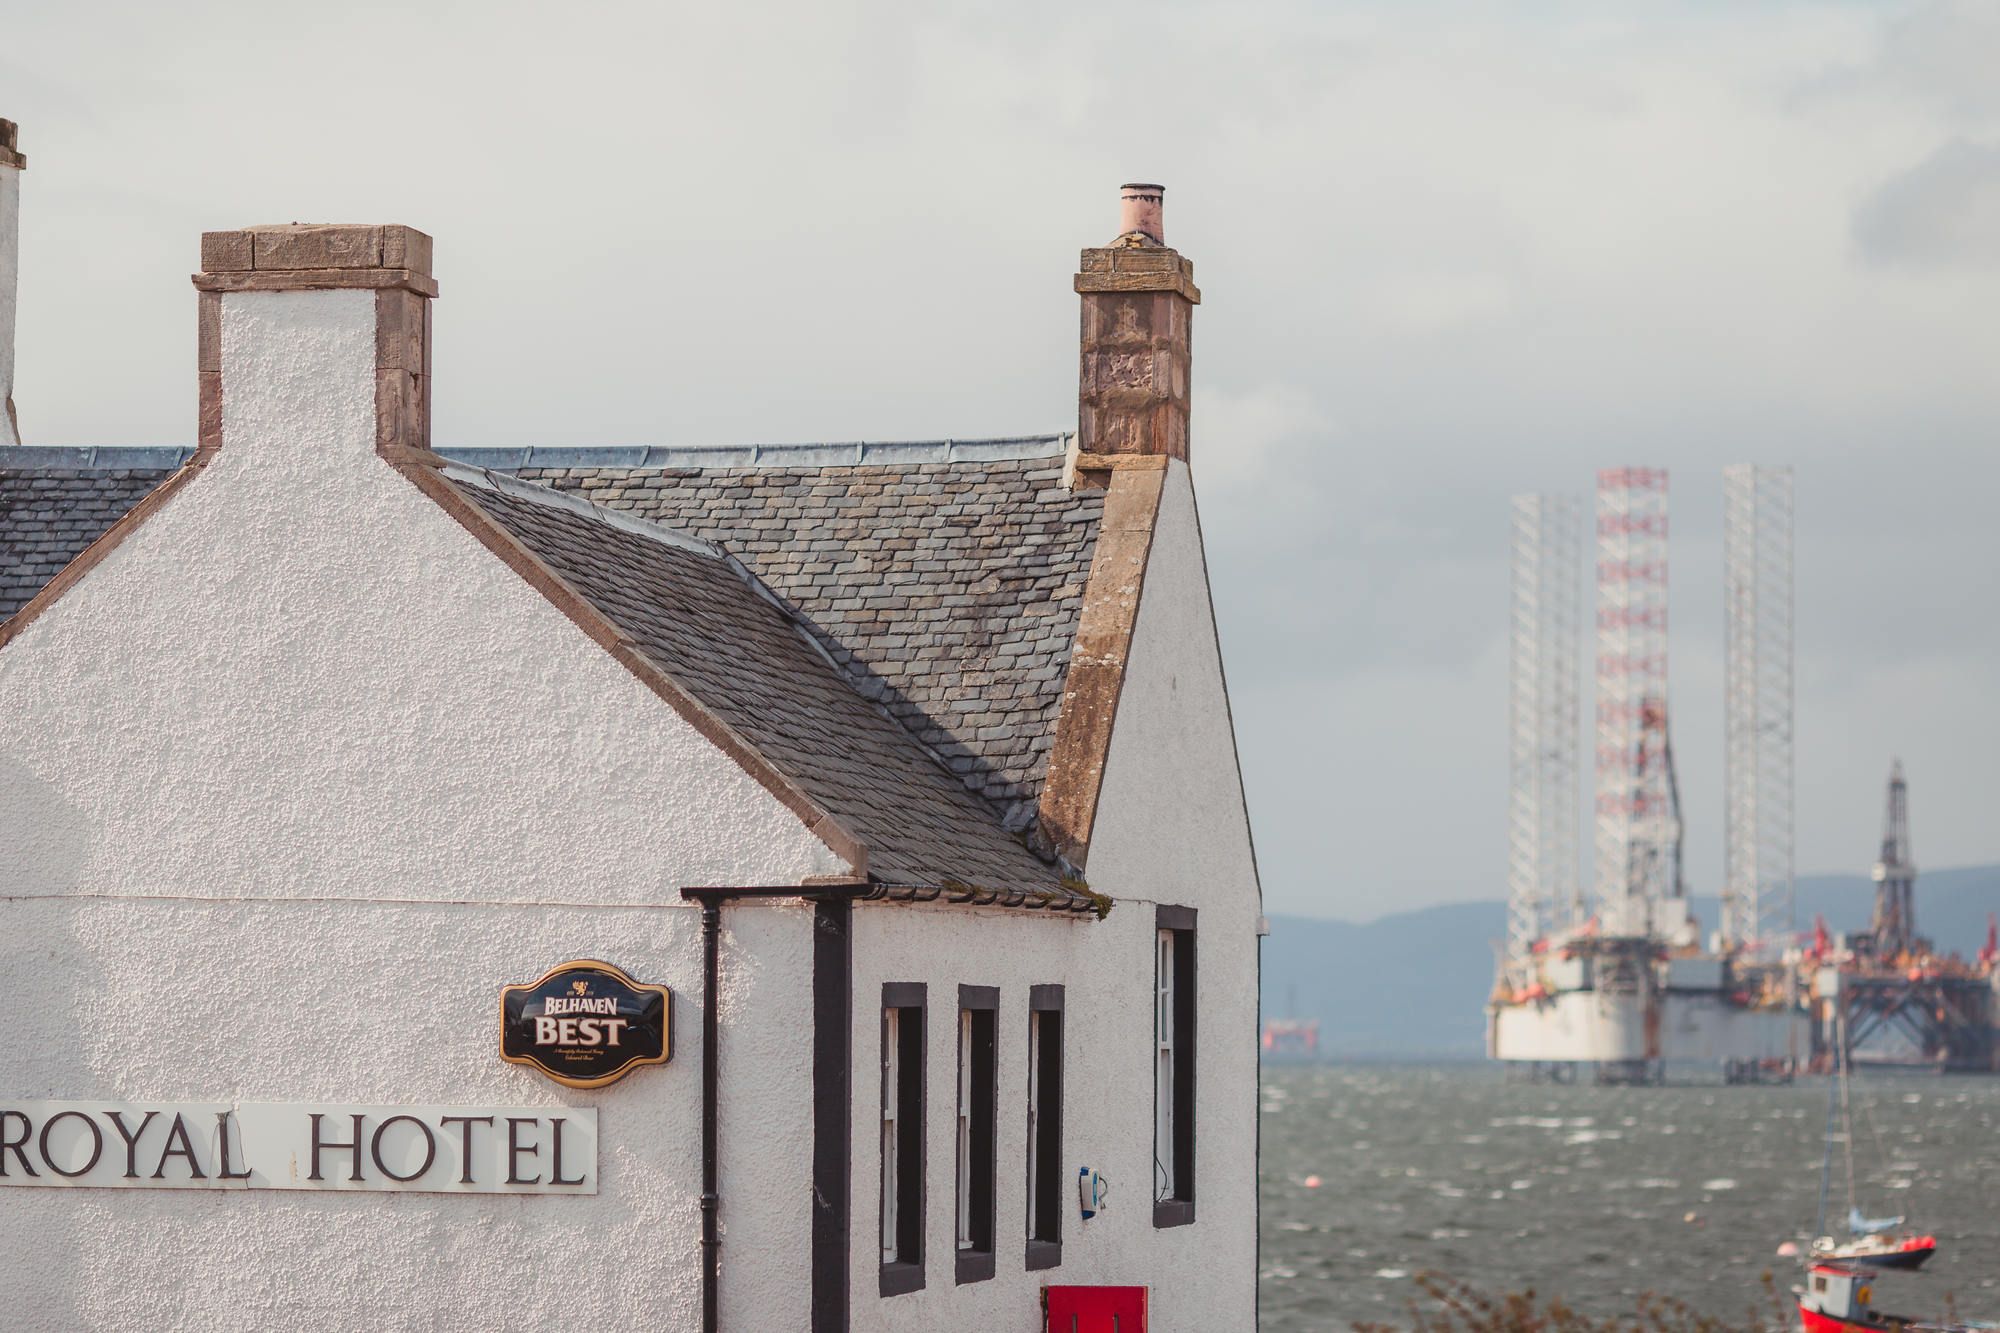 idyllic-rosemarkie-photography-scotland-04